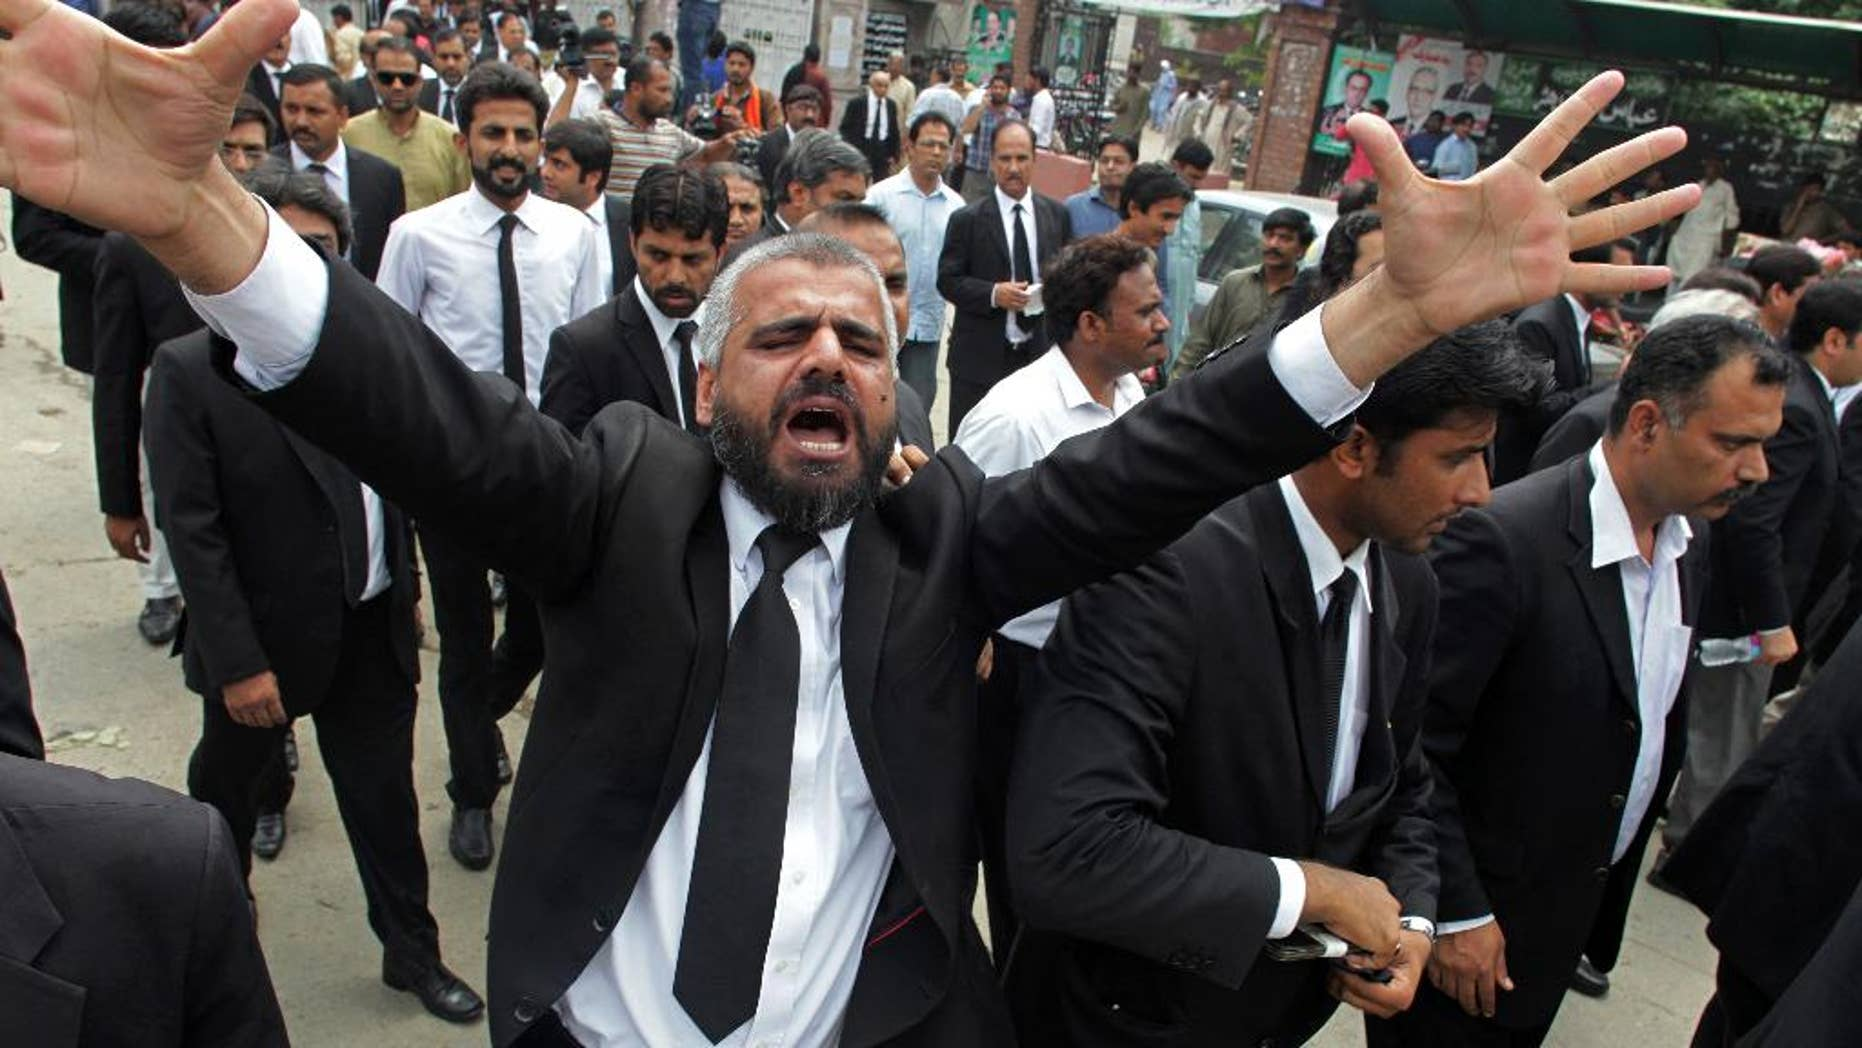 A Pakistan lawyer shouts slogans during a demonstration to condemn a suiciding bombing in Quetta that killed dozens of people and wounded many more, in Lahore, Pakistan, Monday, Aug. 8, 2016. Senior police official Zahoor Ahmed Afridi says the blast took place shortly after the body of a prominent lawyer, killed in a shooting attack earlier in the day, was brought to the hospital. It's unclear if the two events are in any way connected. (AP Photo/K.Chaudary)